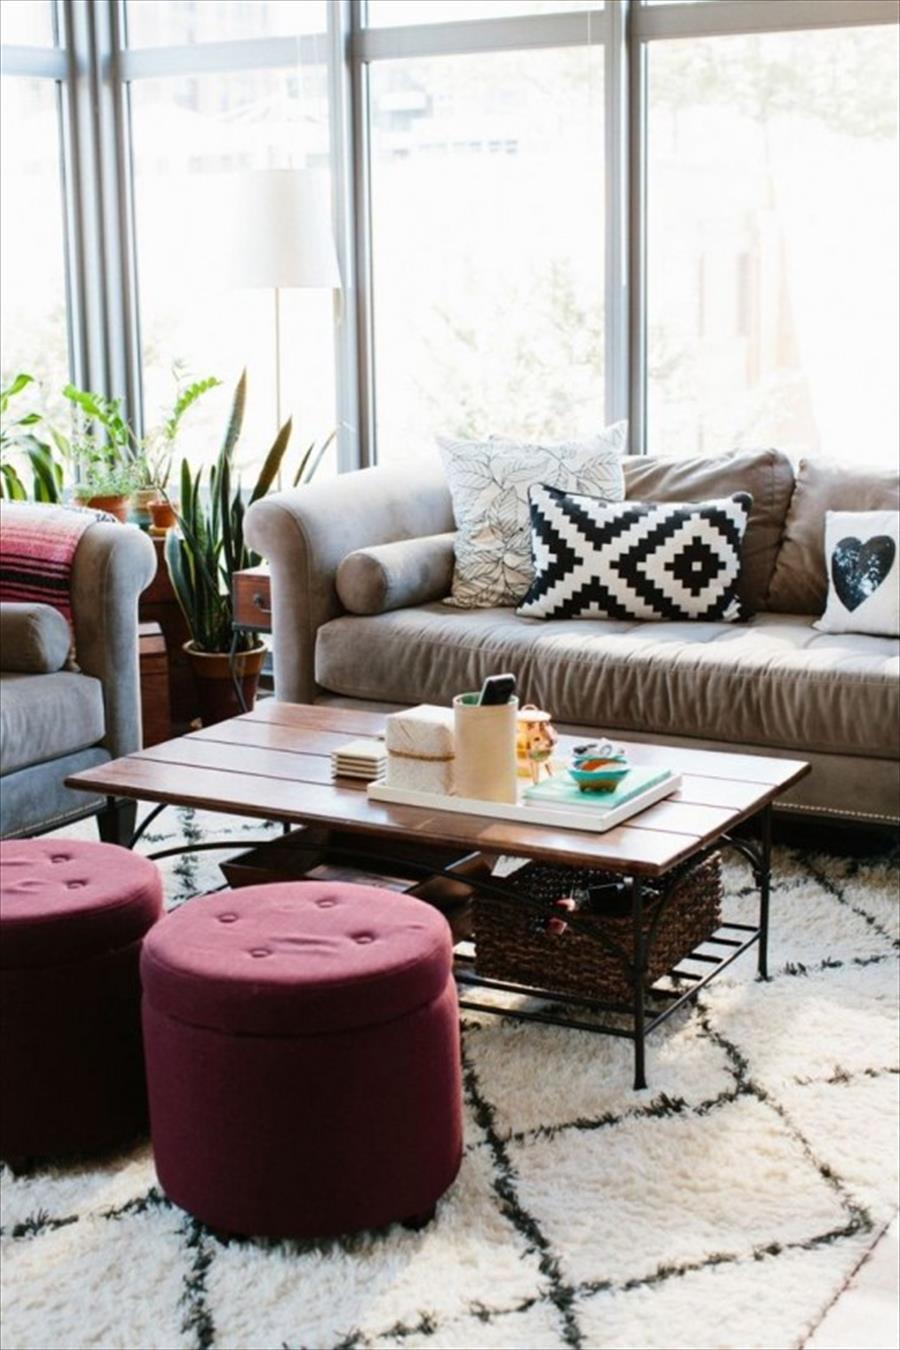 The Best Fall Trends to Improve Your Living Room Decoration7 Fall trends The Best Fall Trends to Improve Your Living Room Decoration The Best Fall Trends to Improve Your Living Room Decoration7